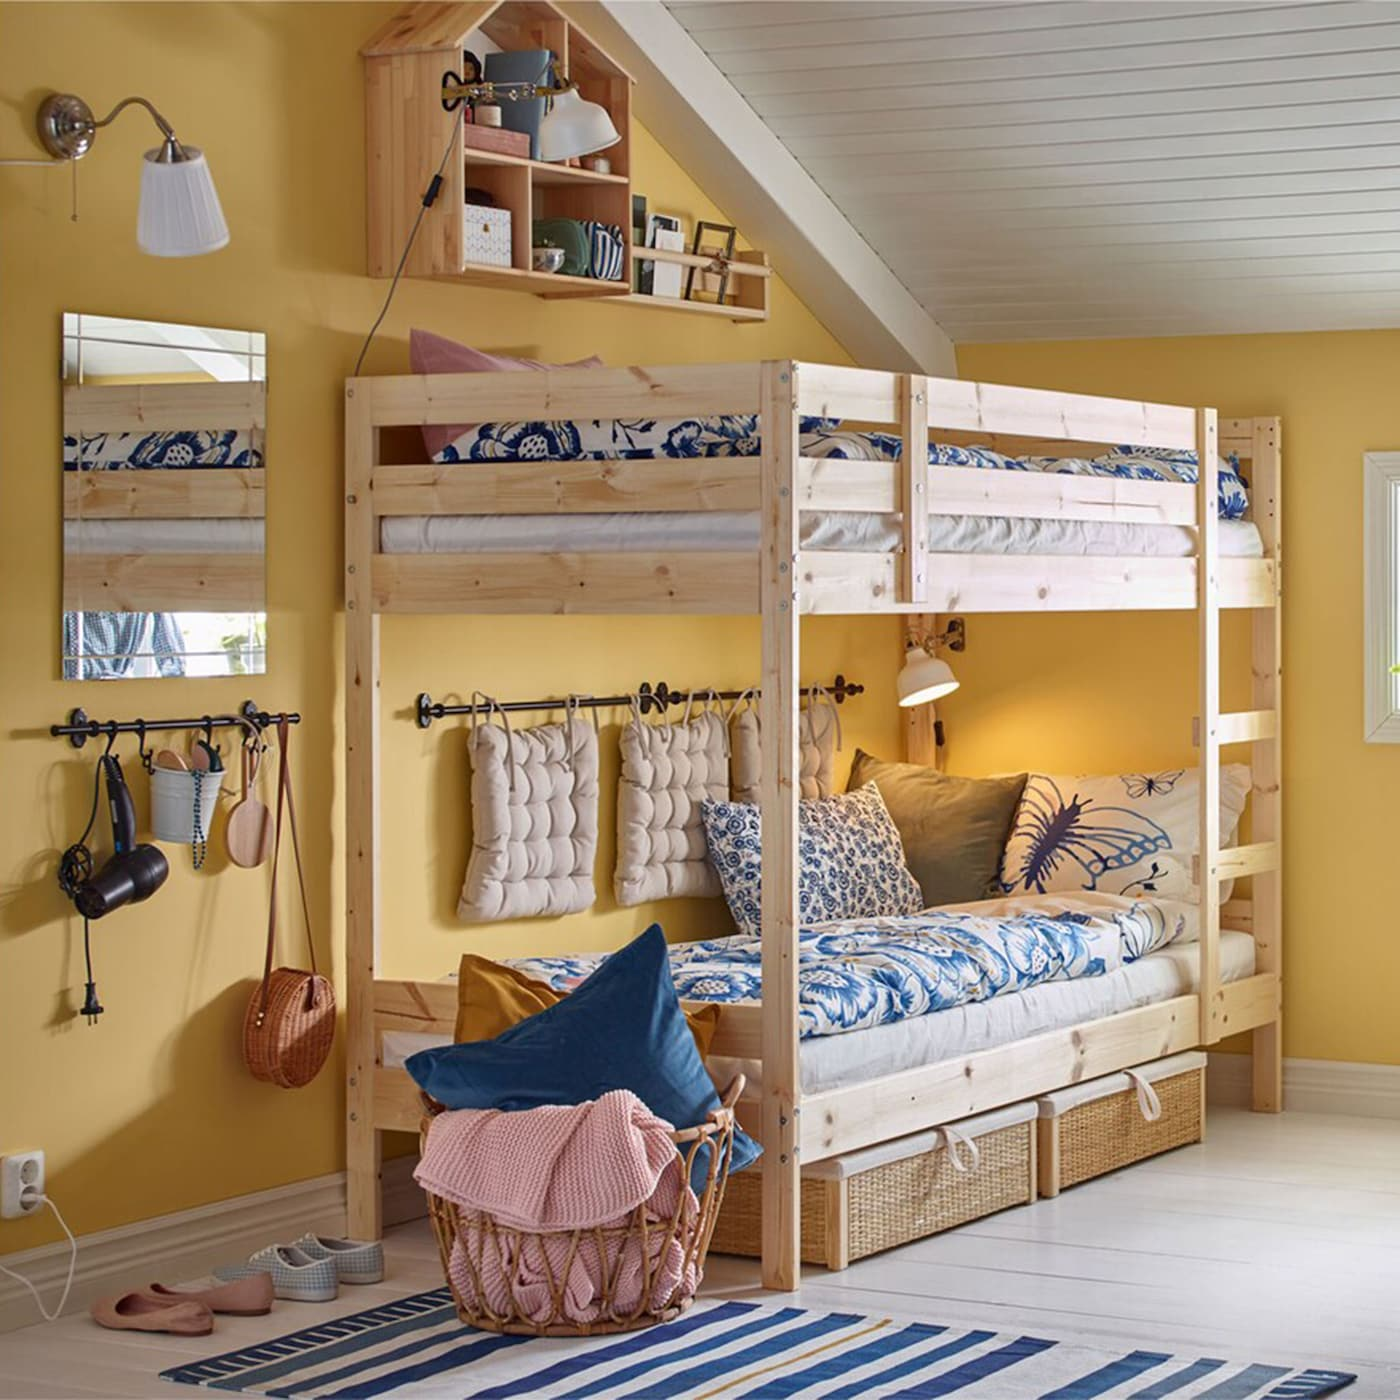 Small Bedroom Design Ideas For Kids Rooms: Getting Big Ideas Into A Small, Shared Bedrooms